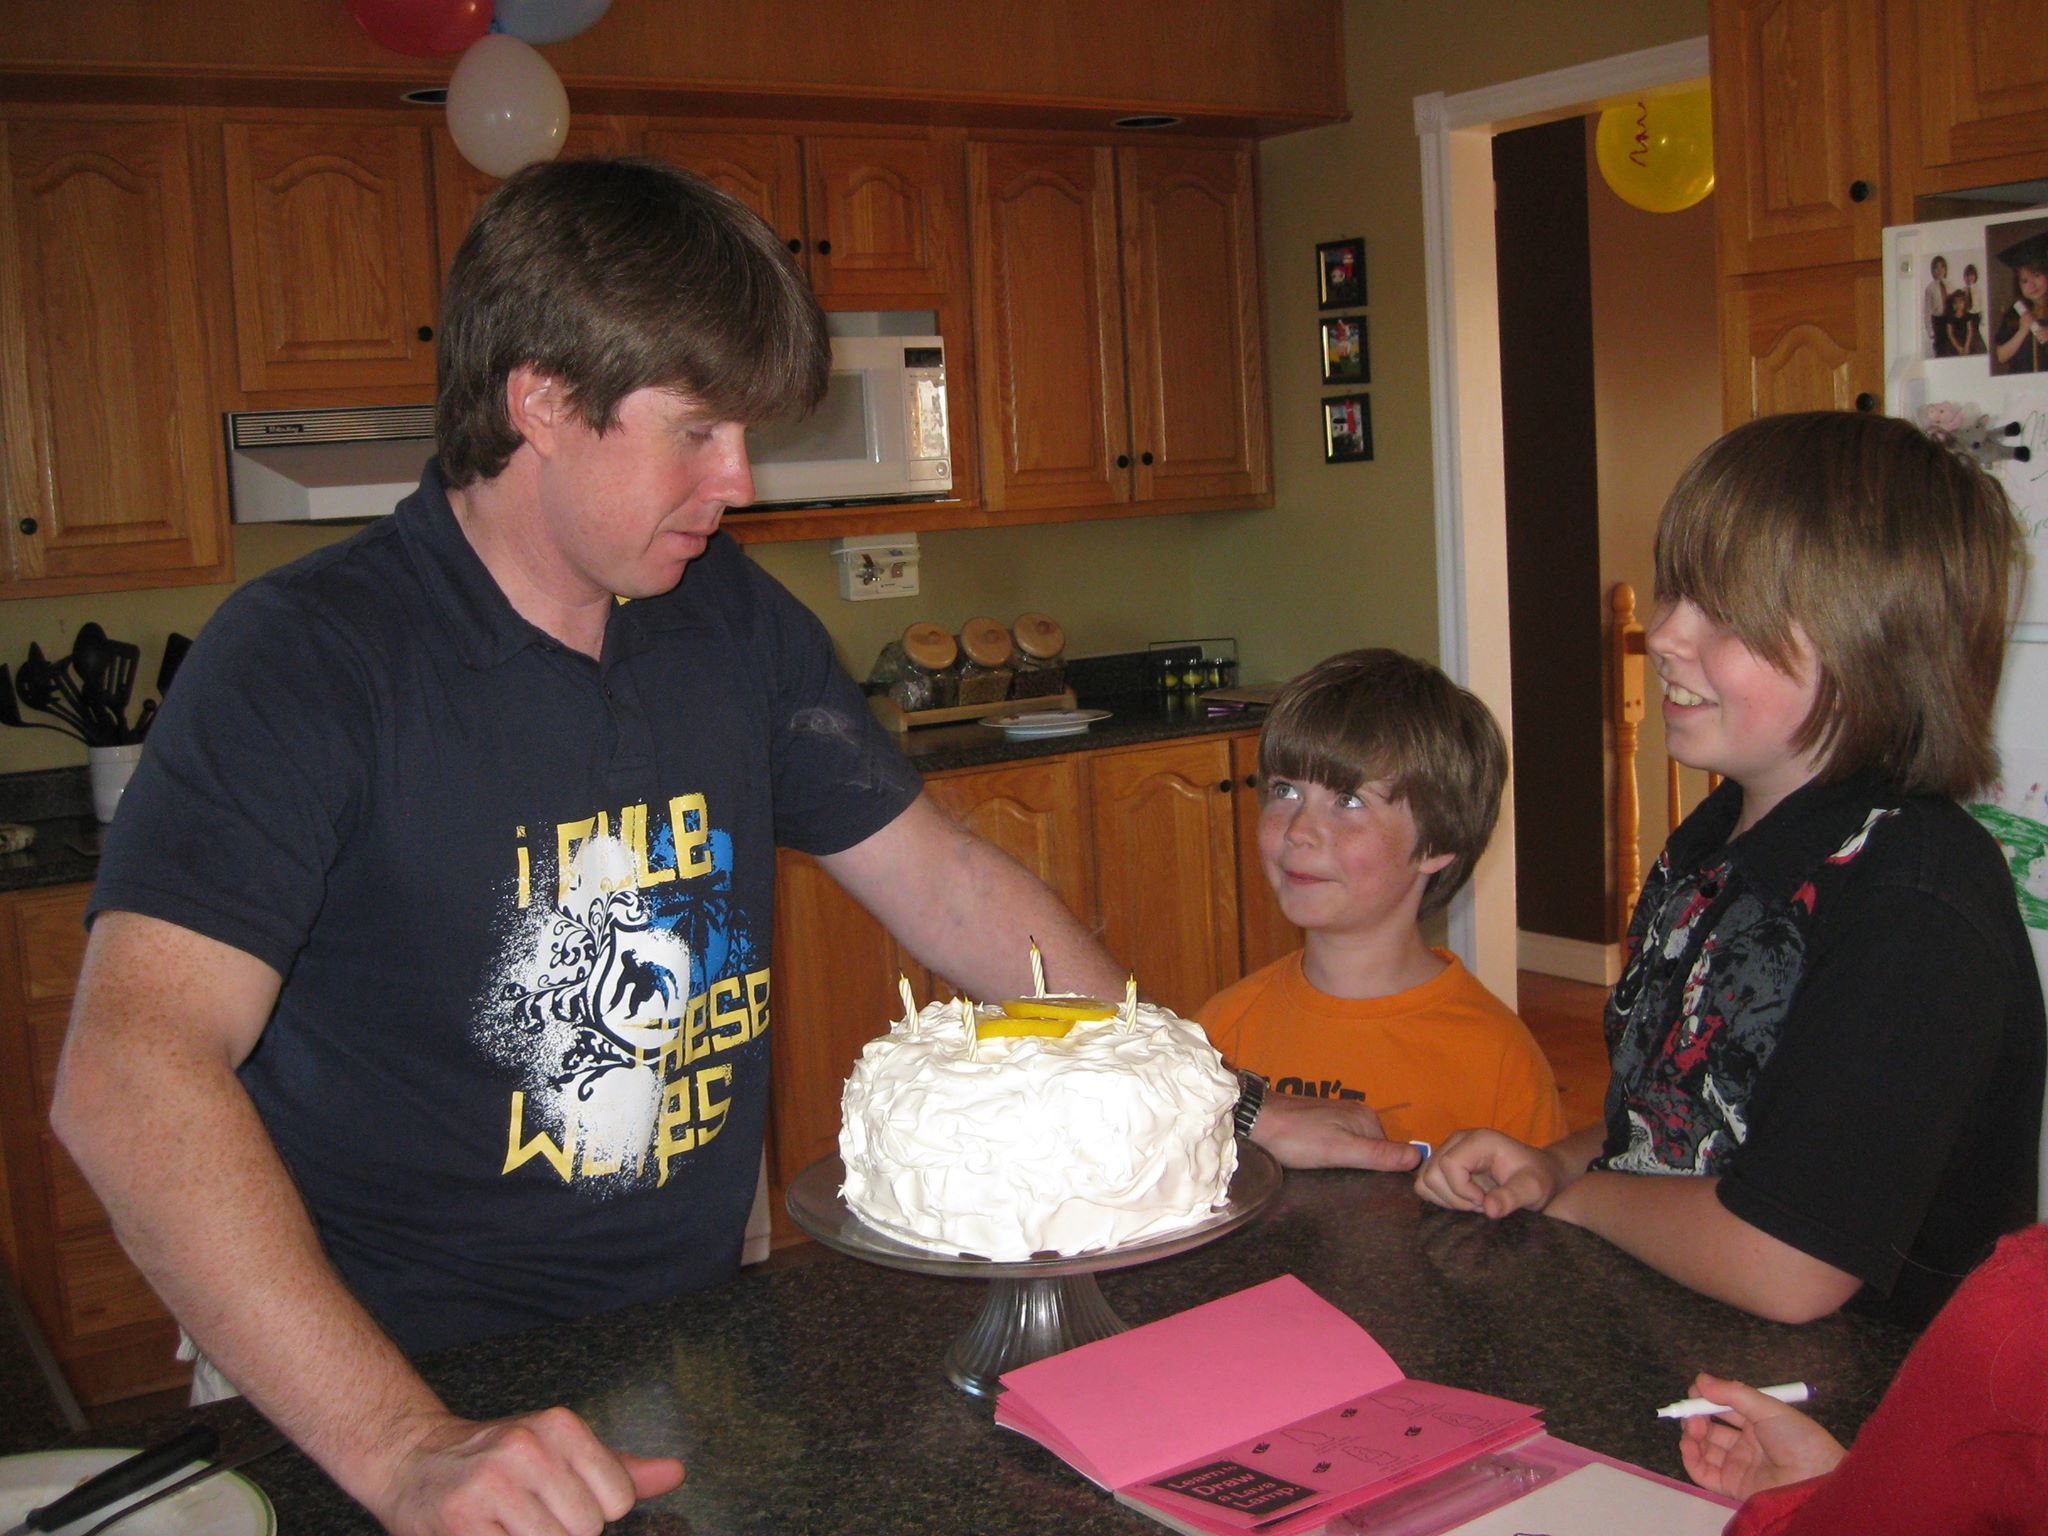 Chris McCarthy's birthday celebration in 2009, with his two sons, Ben and Mackenzie. (Submitted by April McCarthy)